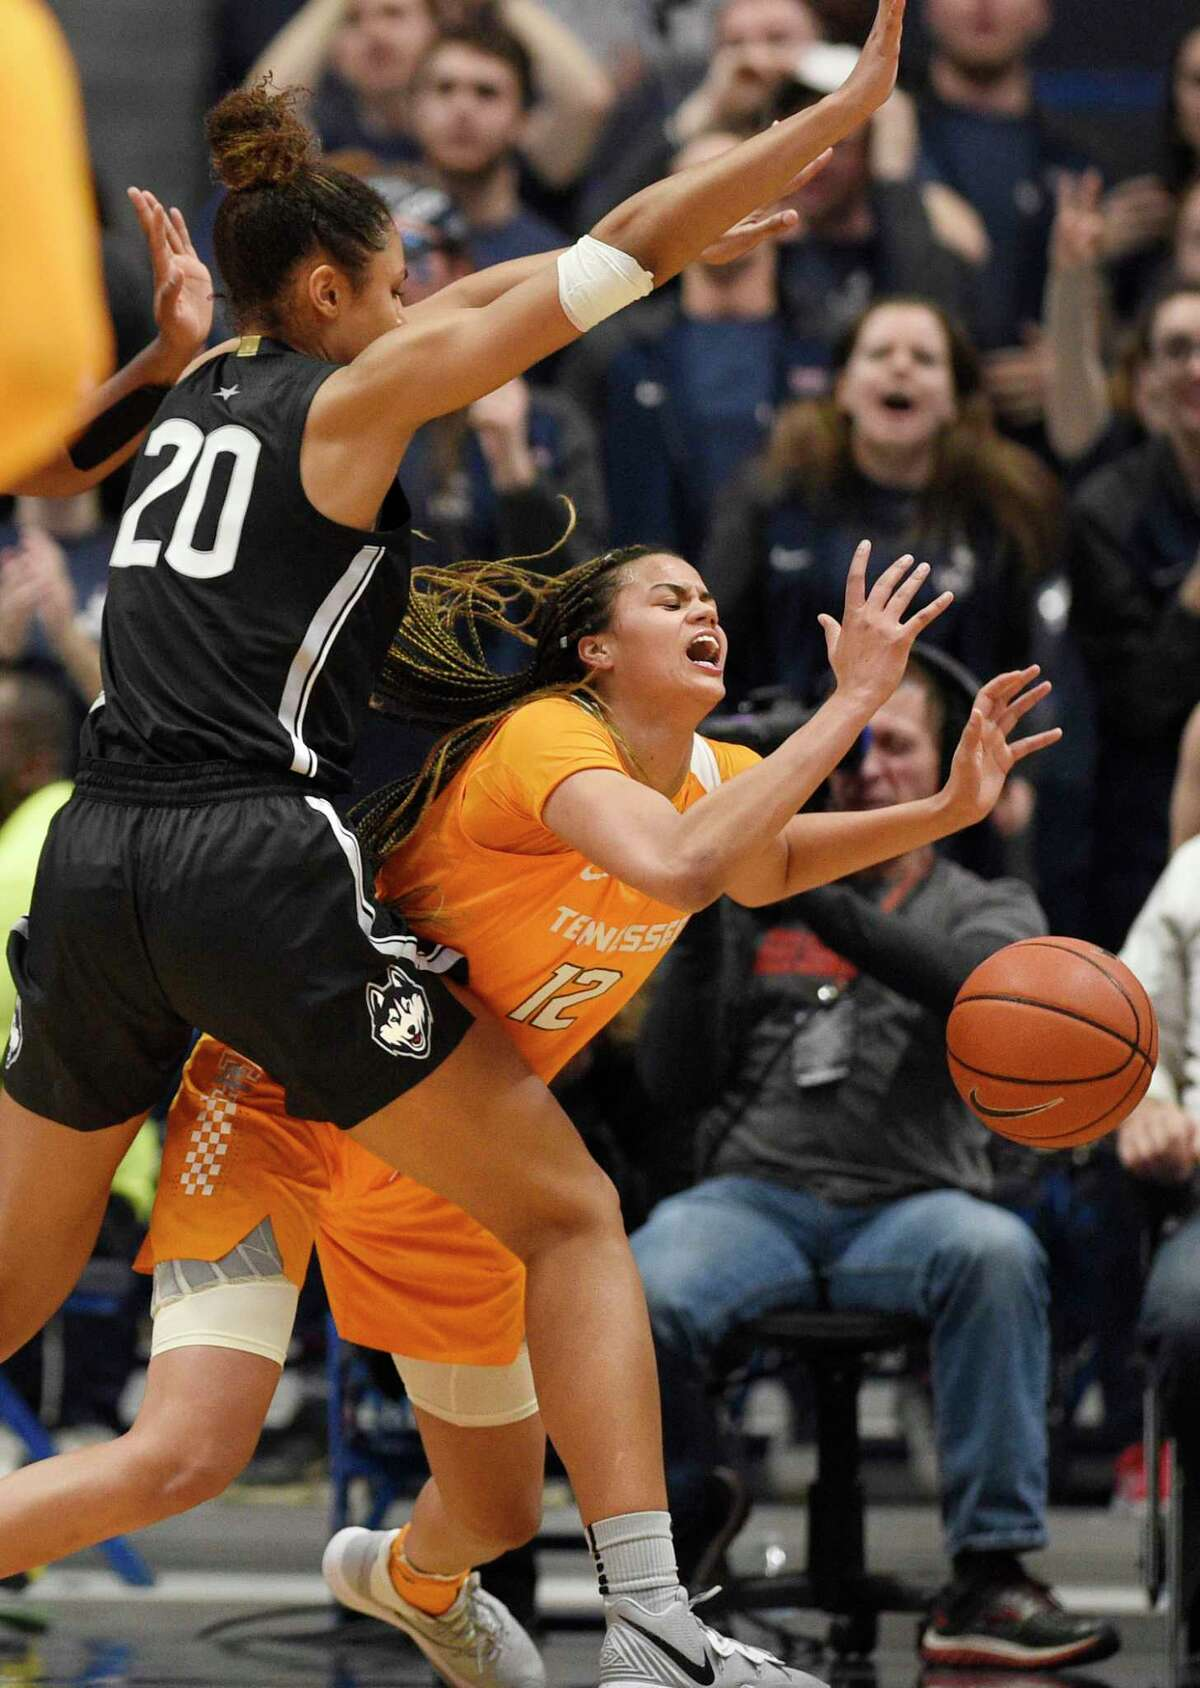 Tennessee's Rae Burrell (12) loses the ball under pressure from Connecticut's Olivia Nelson-Ododa (20) in the second half of an NCAA college basketball game, Thursday, Jan. 23, 2020, in Hartford, Conn.